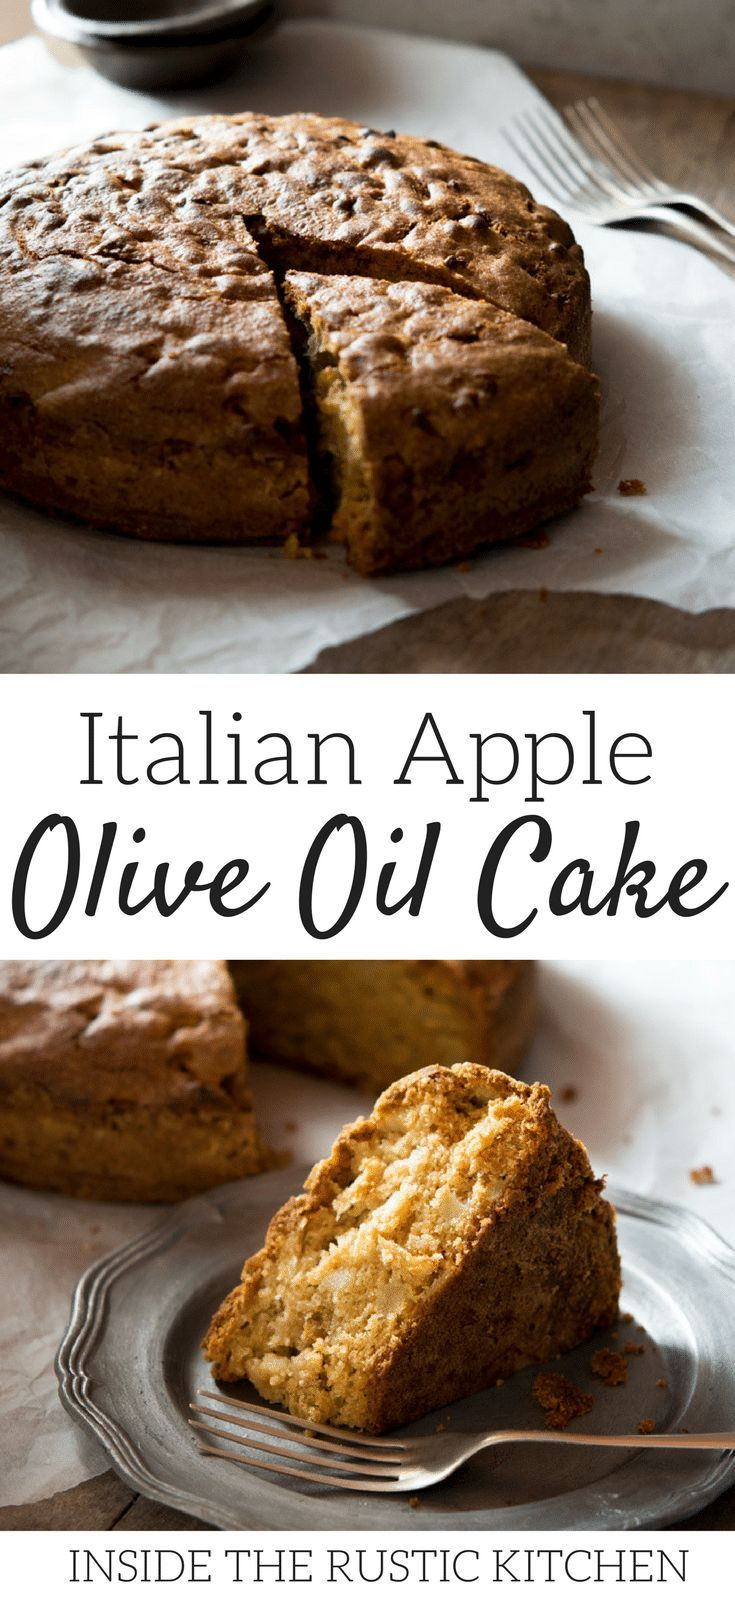 A rustic Italian apple olive oil cake recipe made with cinnamon and sultanas it's absolutely perfect for breakfast or dessert with a hot cup of coffee. Find the recipe for this authentic Italian apple olive oil cake and more traditional Italian recipes at